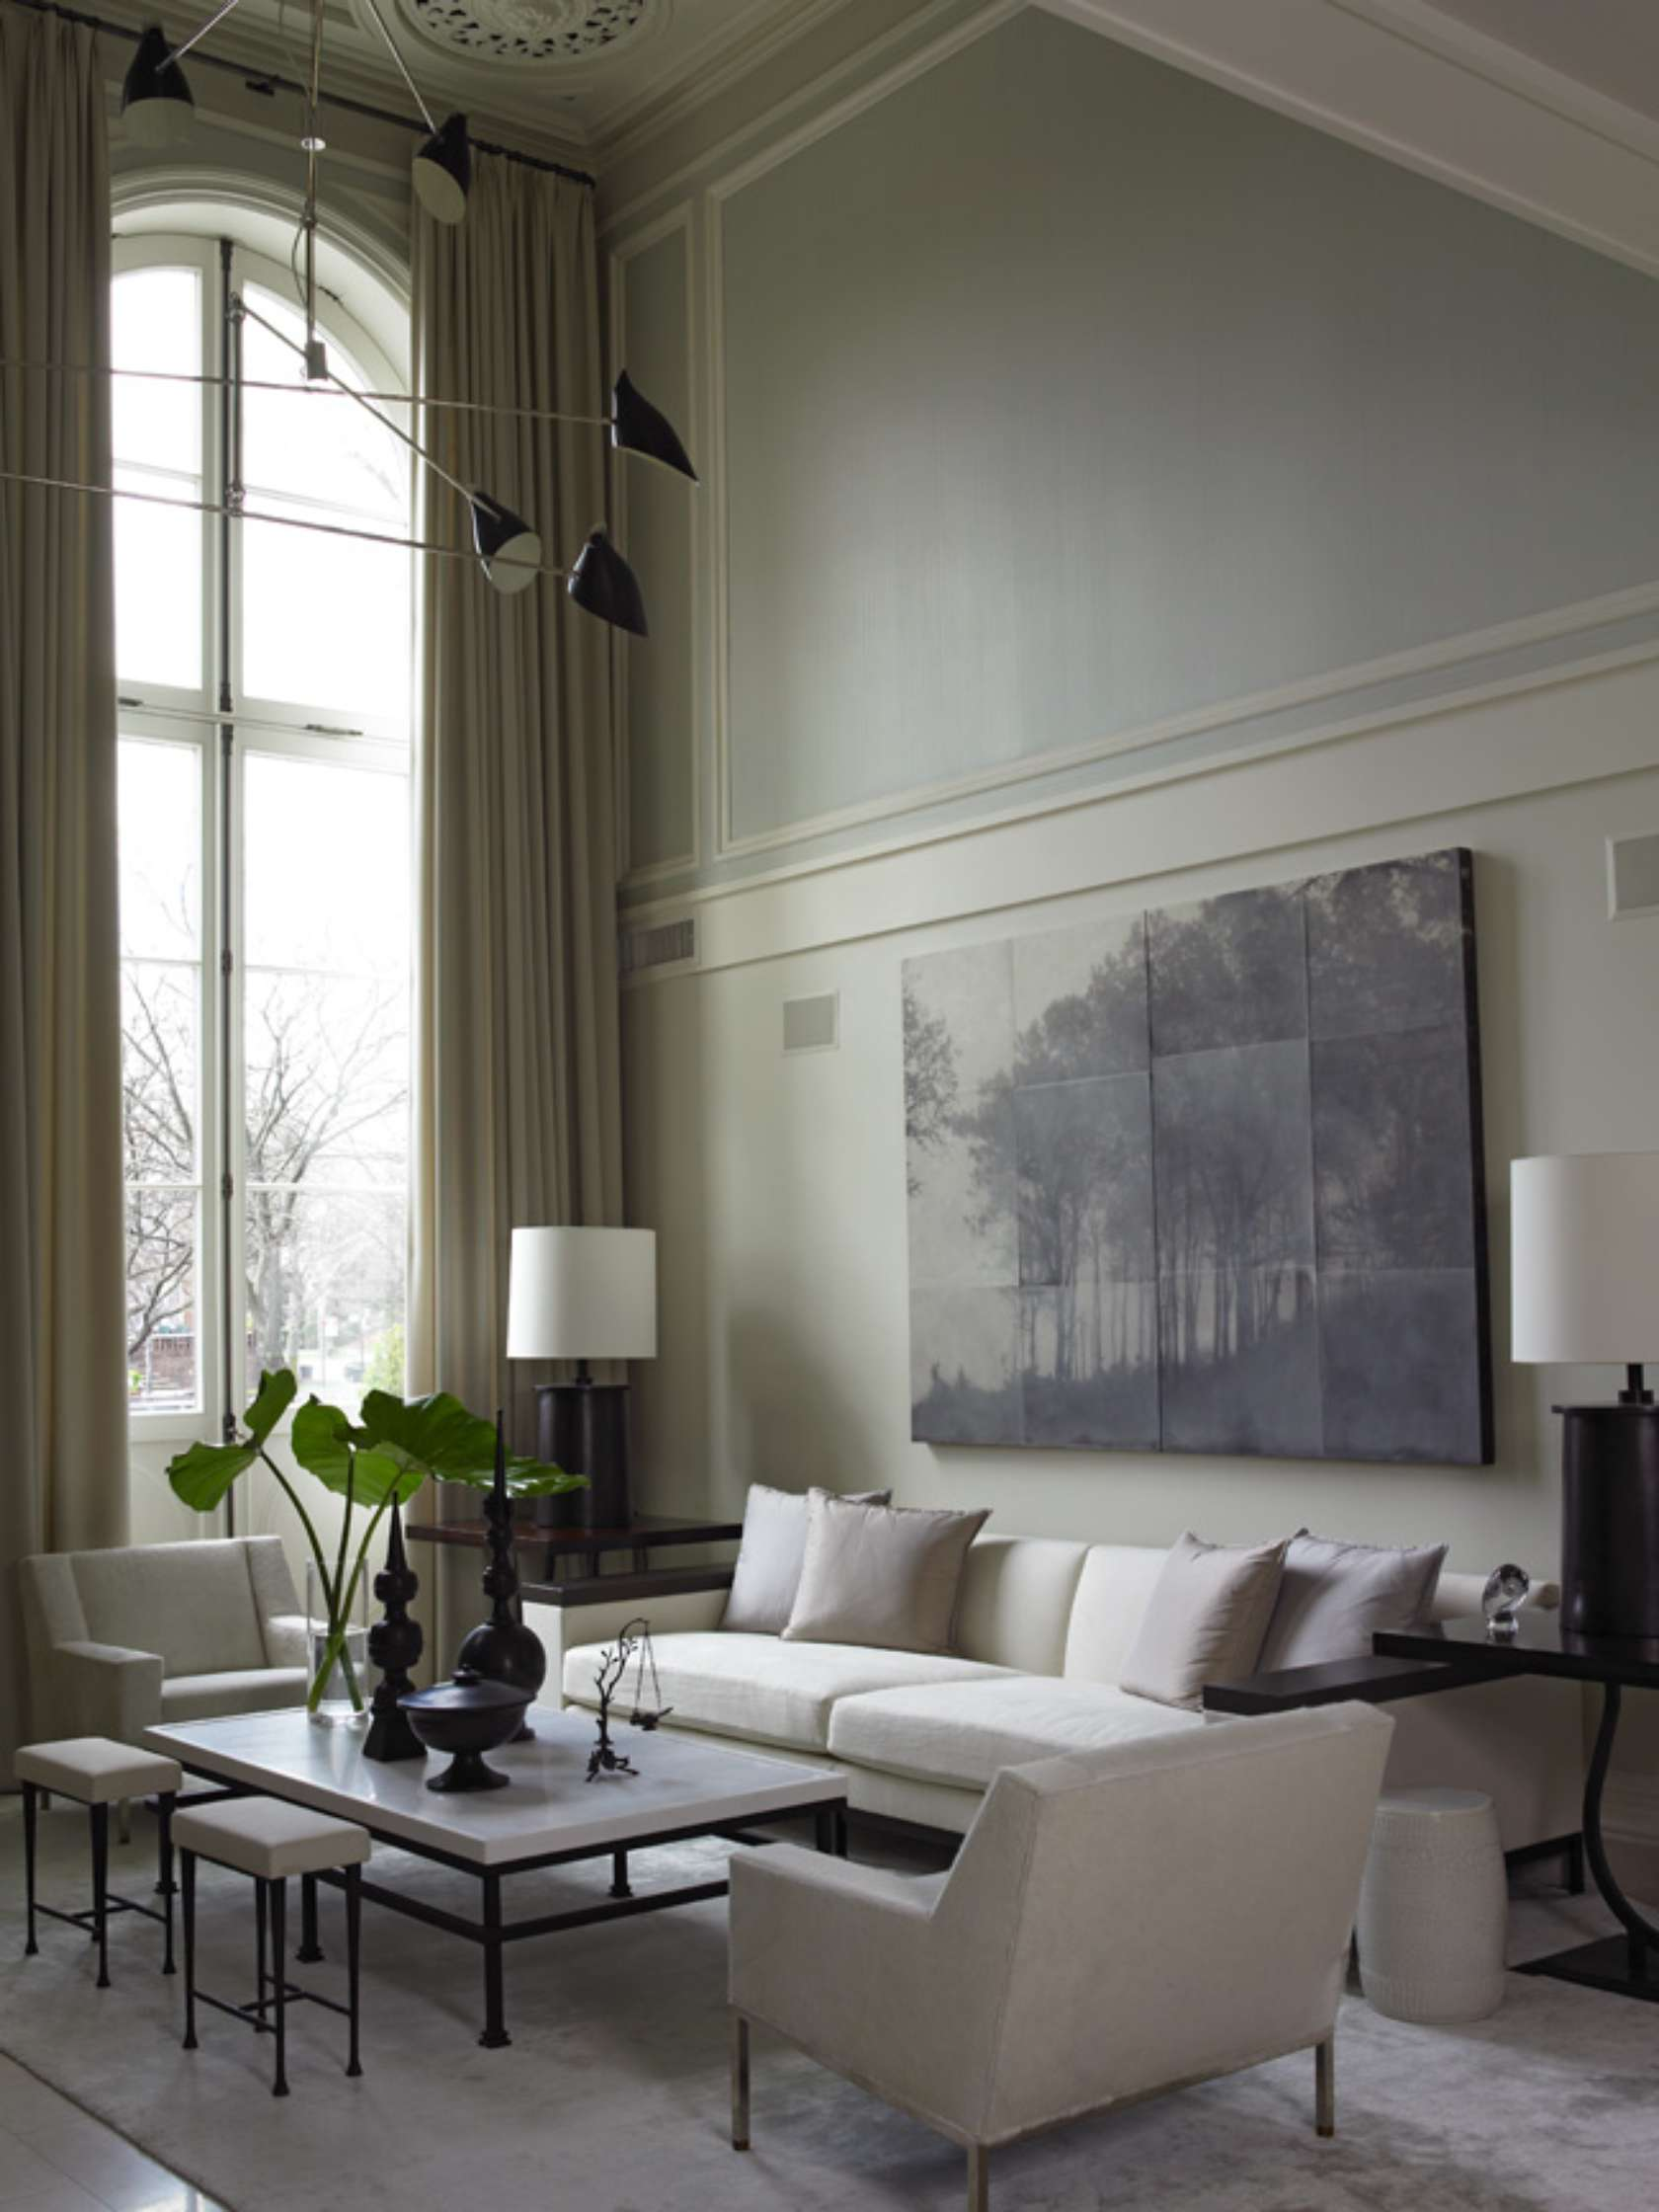 Parisian style townhouse architizer - How to decorate a living room with pictures on walls ...